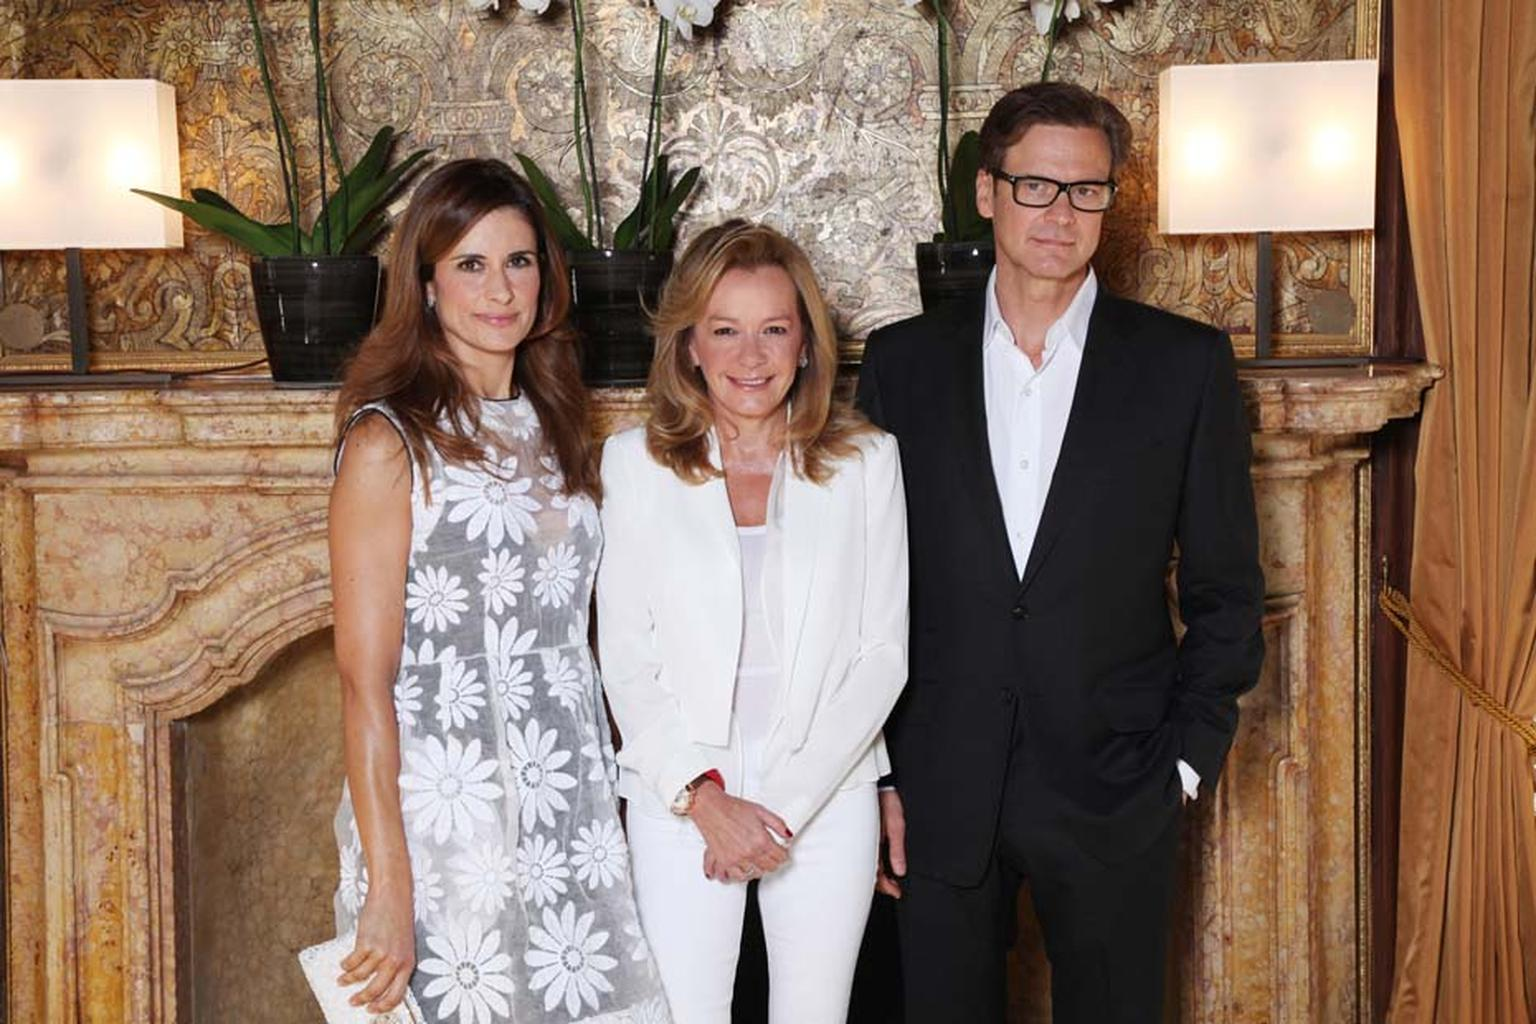 Livia Firth pictured with Caroline Scheufele and her husband, actor Colin Firth at the launch of the third piece in Chopard's Green Carpet Collection at the Venice Film Festival